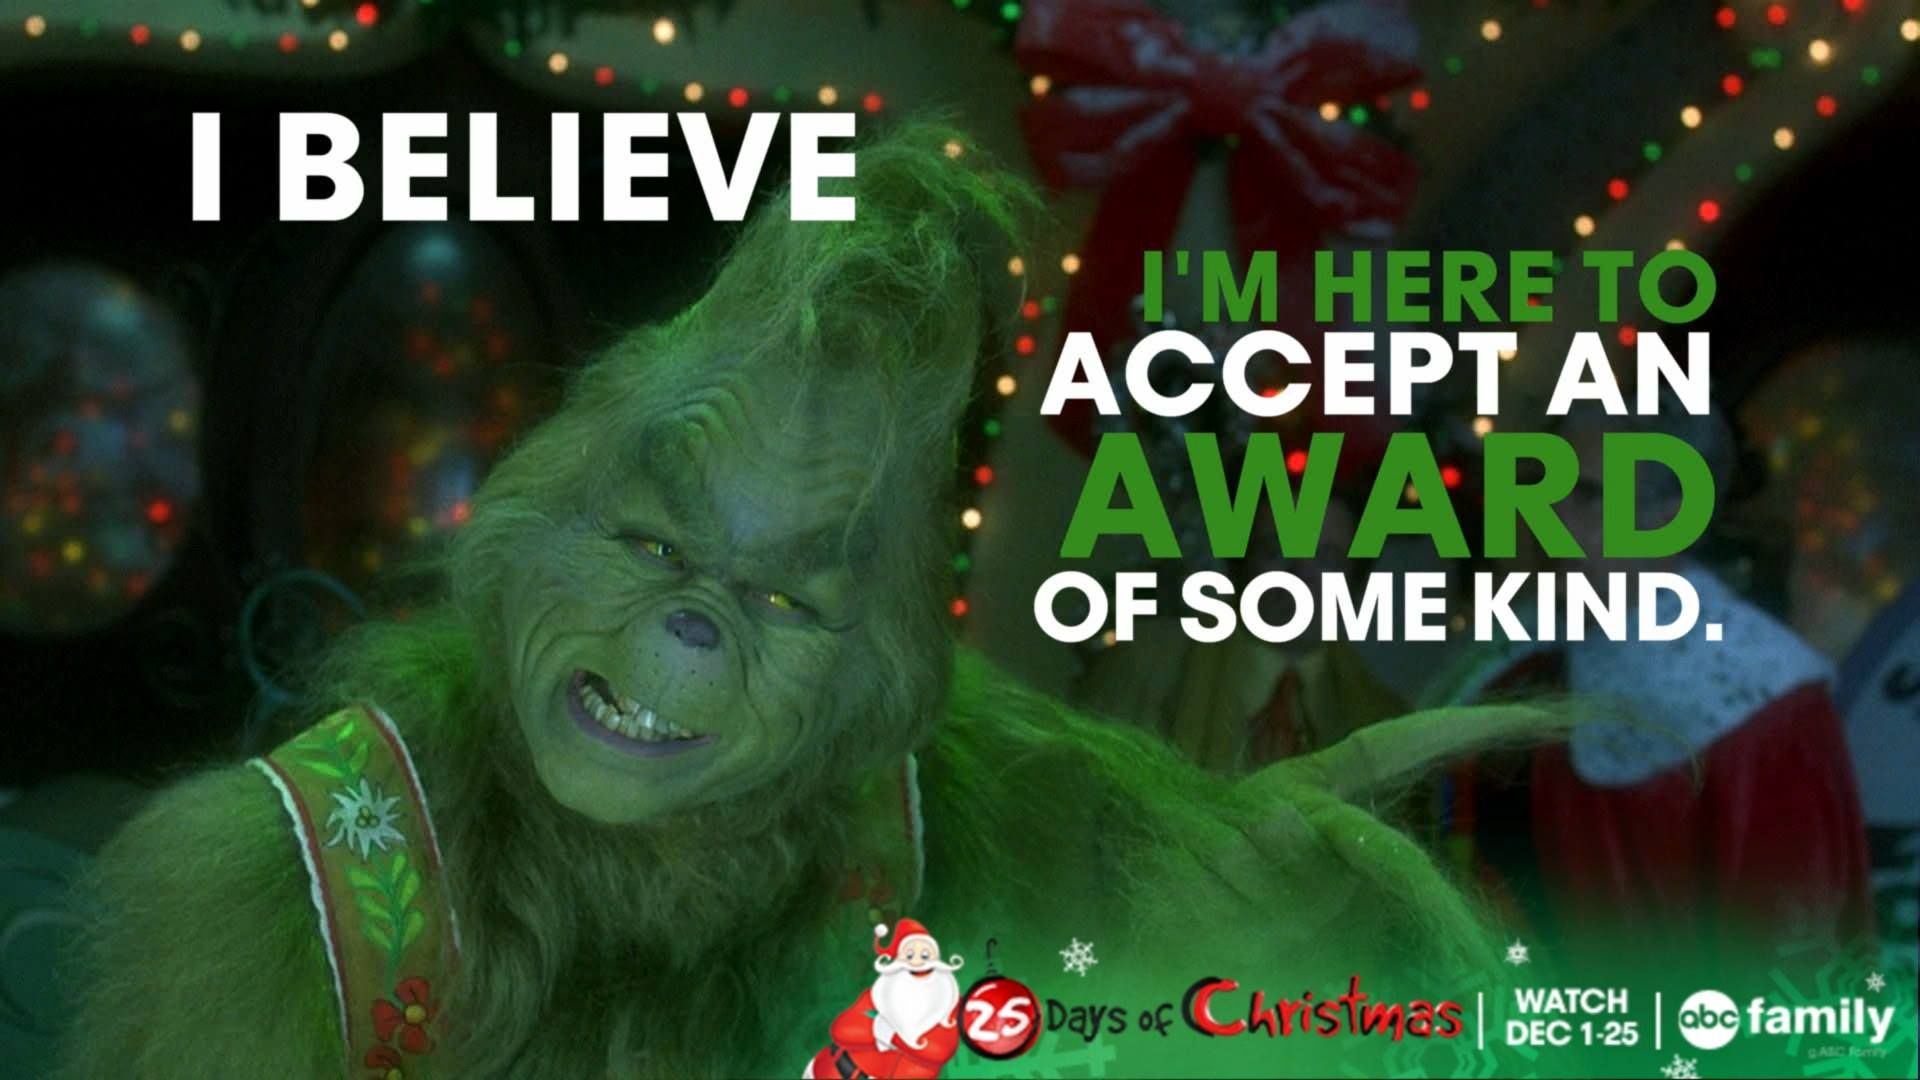 How did you guys like watching the Grinch last night? Here ...